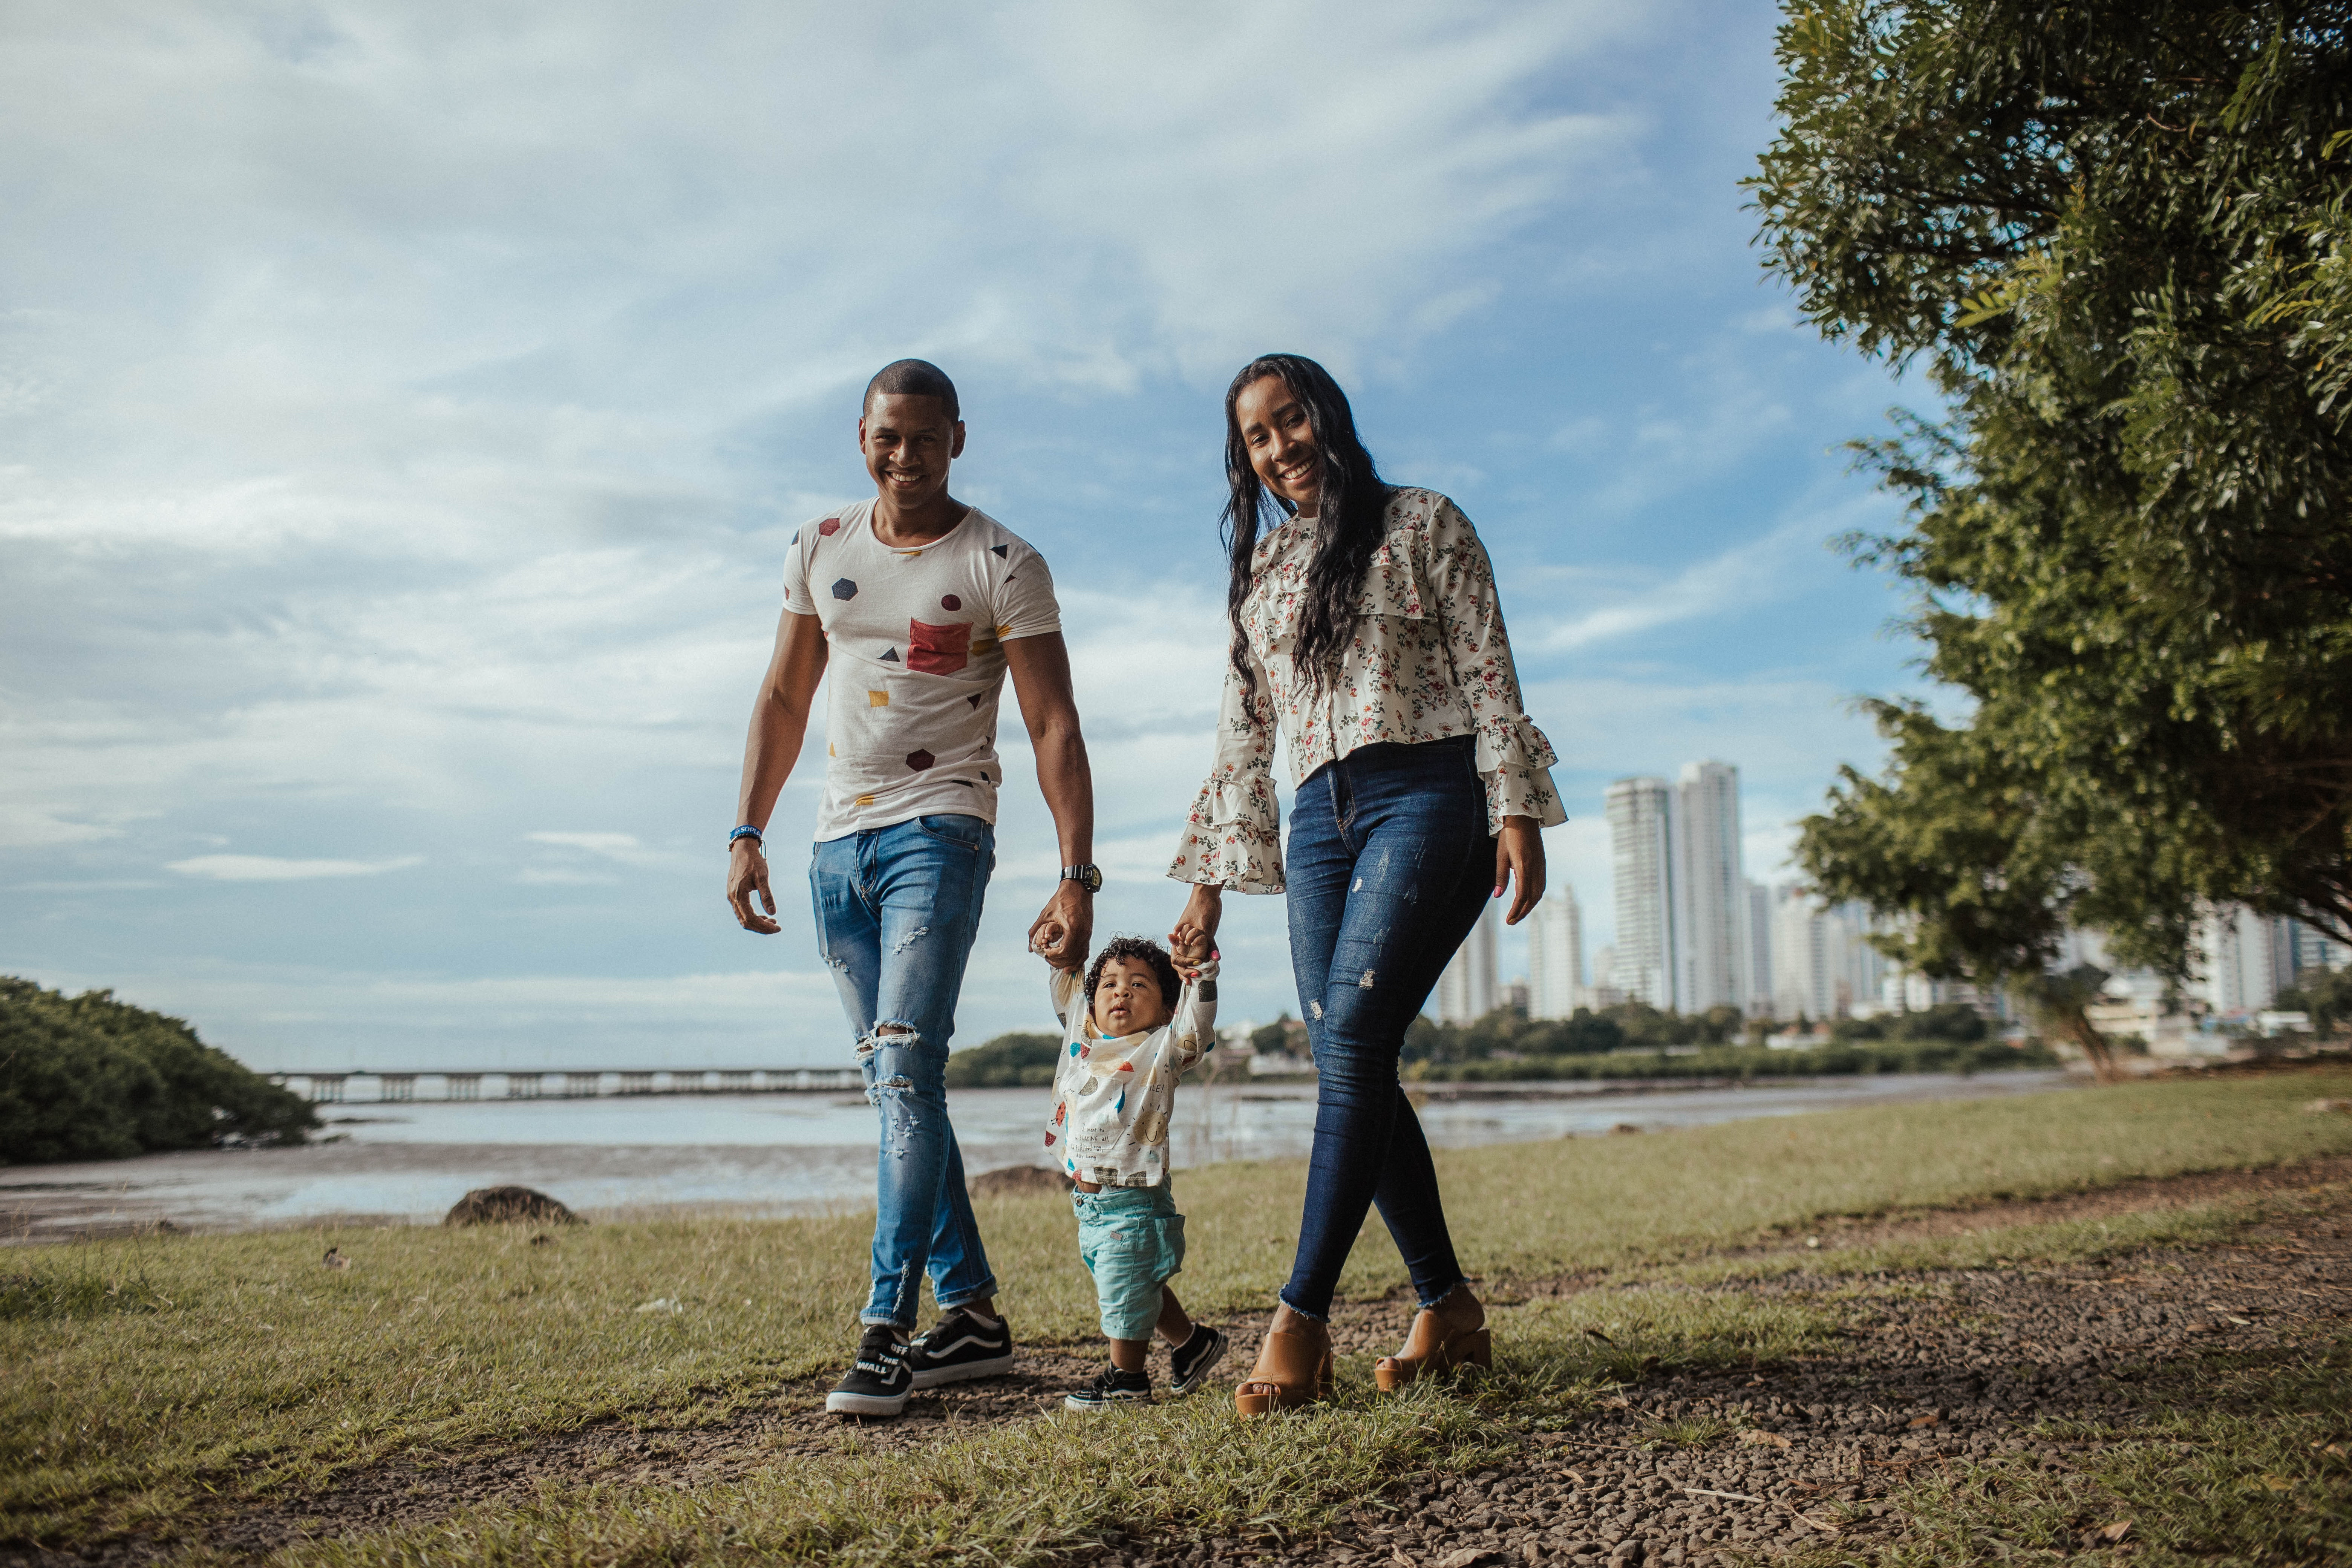 Two young parents smile as they walk together on either side of their child, holding his hands